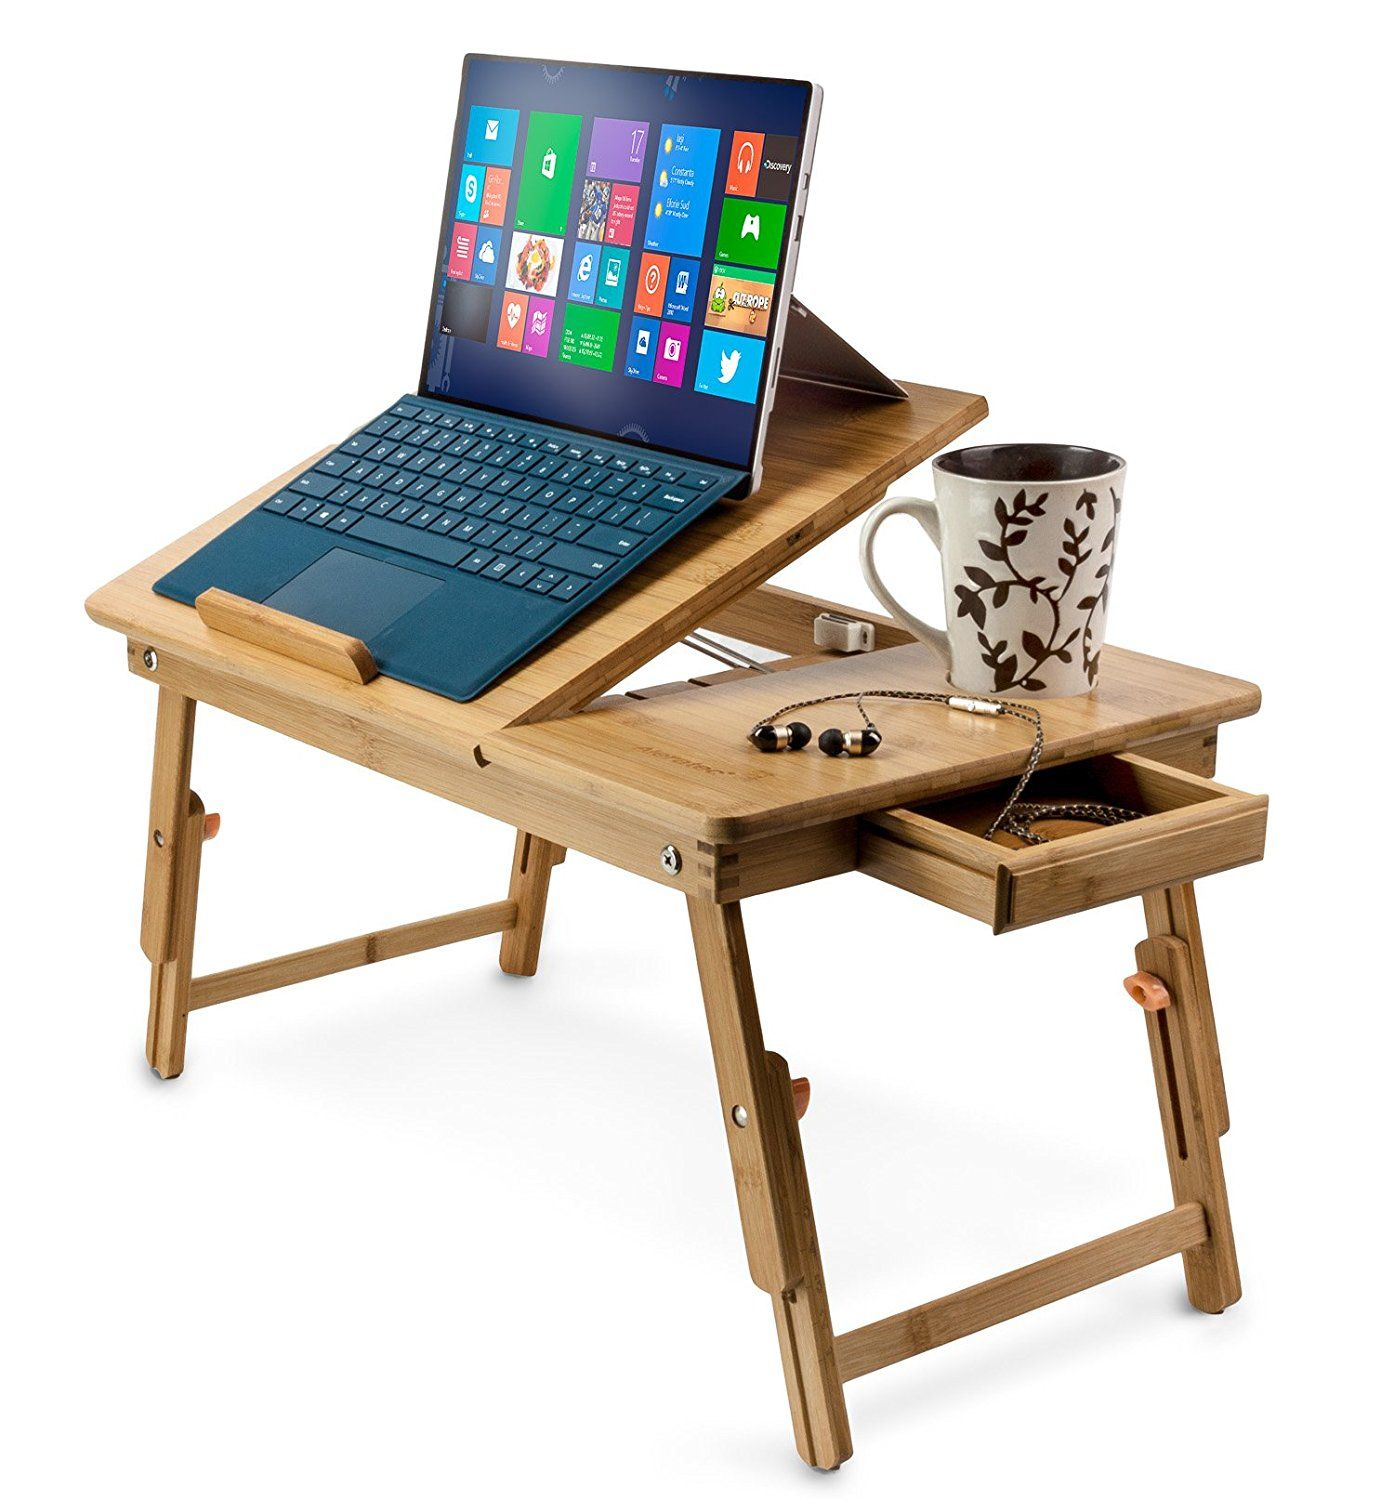 Amazon.com : Aleratec Natural Bamboo Adjustable Laptop Stand Up to 15in Folding Bed Table : Office Products